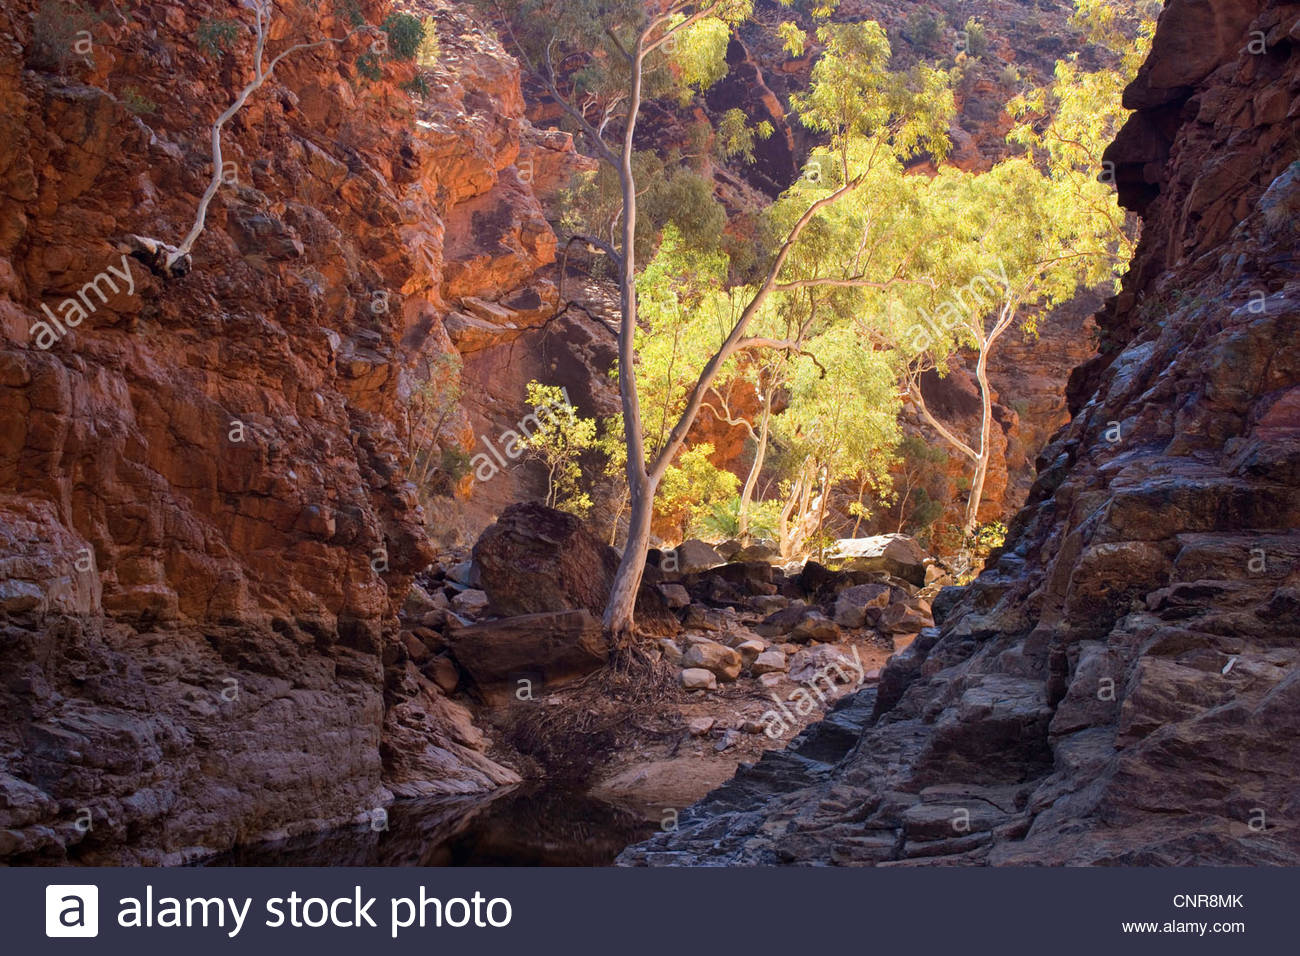 towering red cliffs at the entrance of Serpentinge Gorge and a semi-permanent waterhole, Australia, Northern Territory, - Stock Image